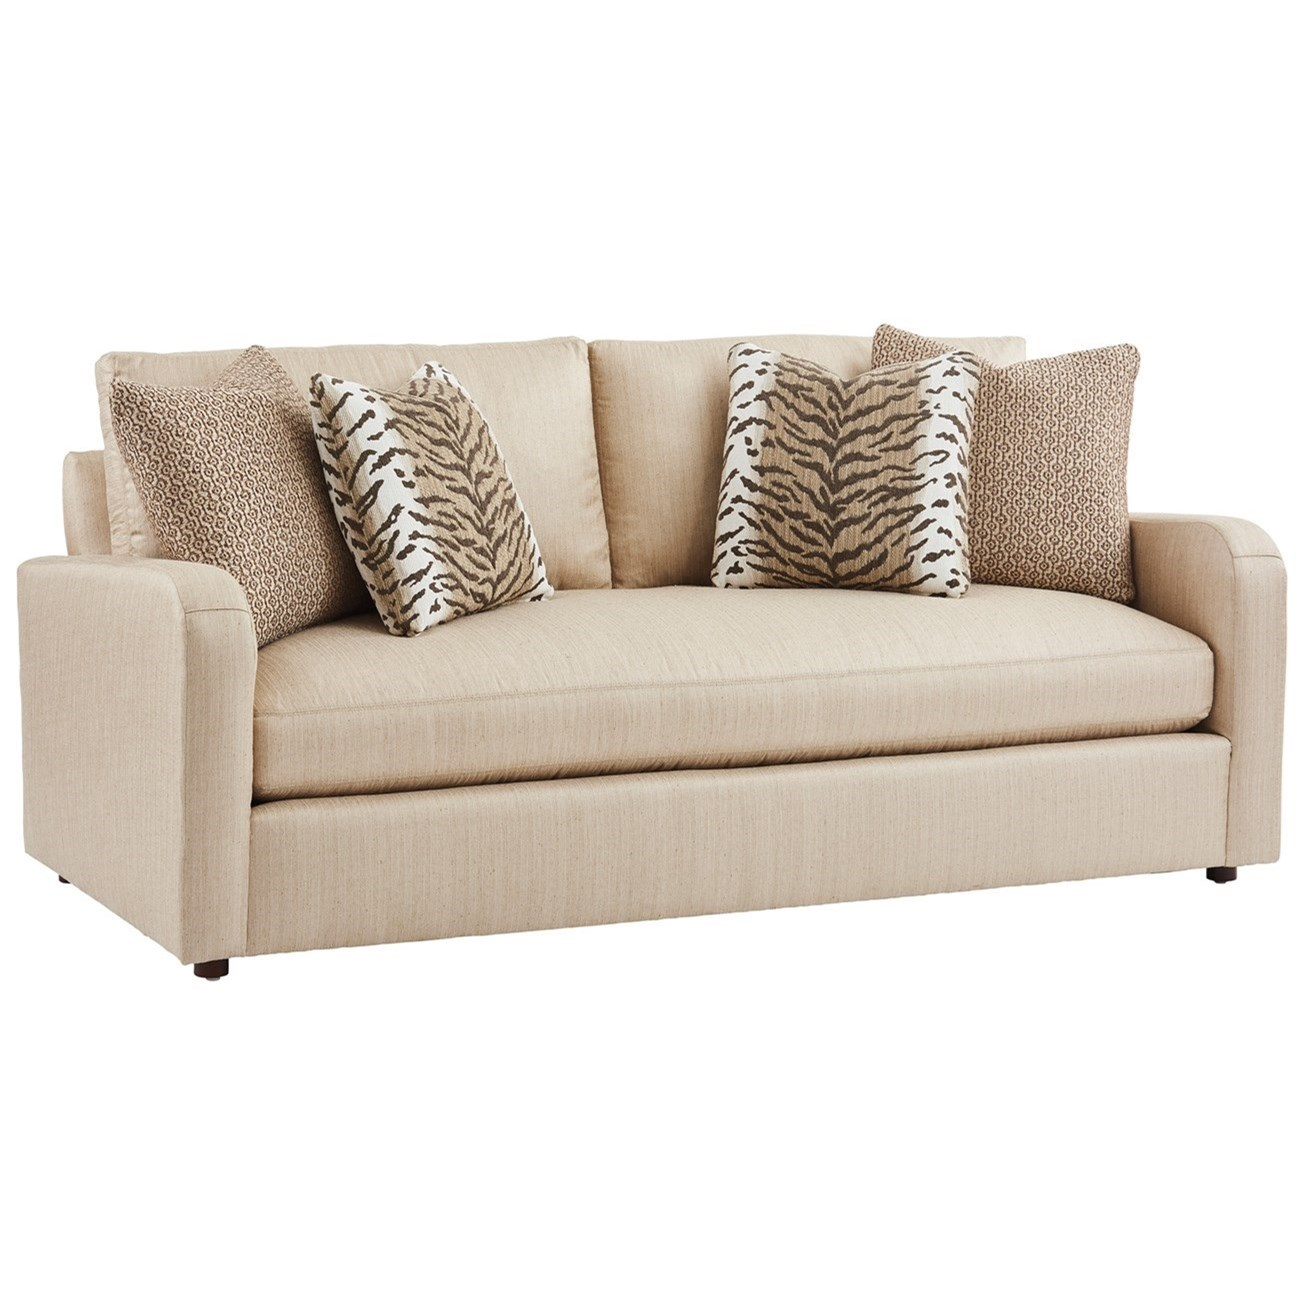 Barclay Butera Upholstery Terra Apartment Sofa by Barclay Butera at Baer's Furniture